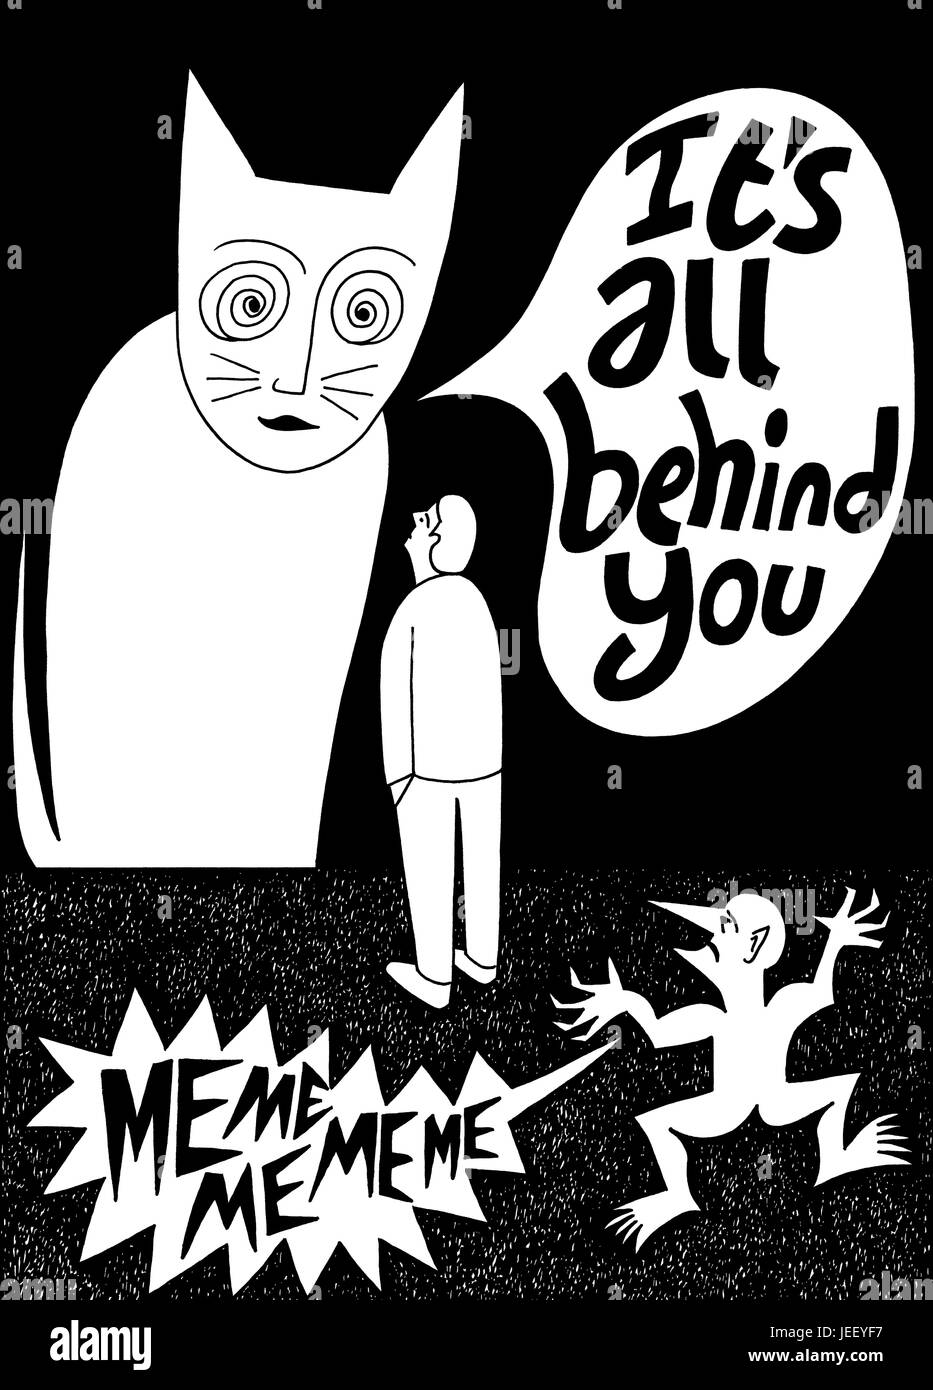 It's all behind you. A black and white editorial illustration.Stock Photo